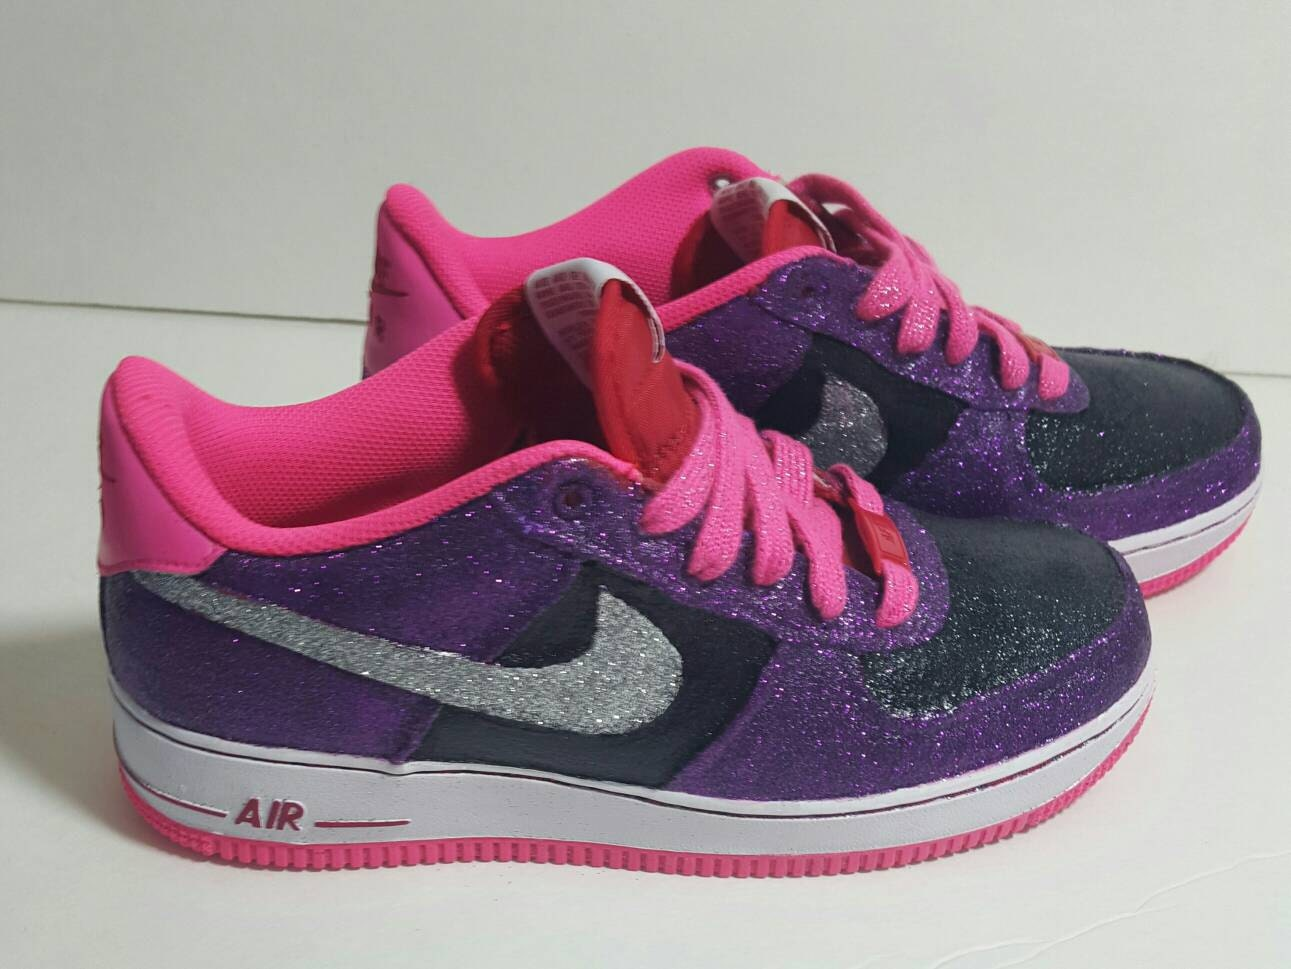 57f2d0aea7a6 lovely Nike Air Force 1 Glitter Sneakers Size 6 youth by KikosDesigns